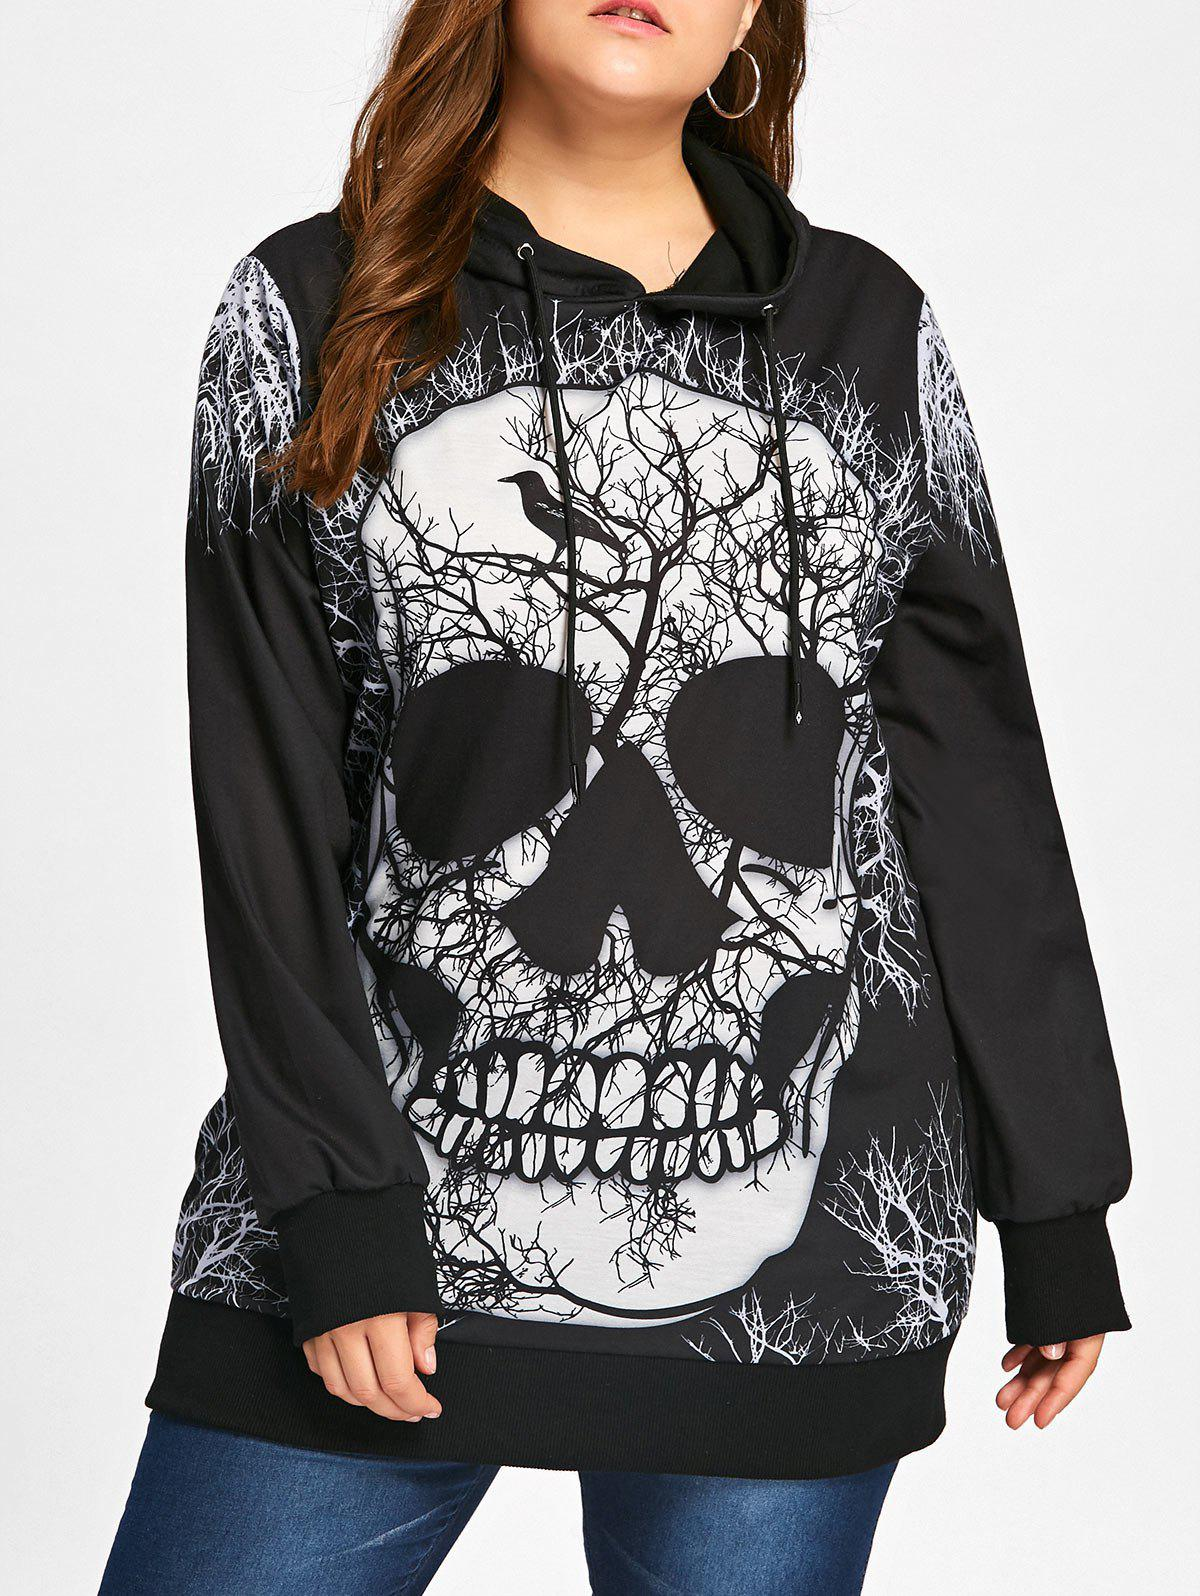 Skull Print Plus Size Halloween HoodieWOMEN<br><br>Size: 5XL; Color: BLACK; Material: Polyester,Spandex; Shirt Length: Regular; Sleeve Length: Full; Style: Fashion; Pattern Style: Character,Print; Season: Fall,Spring; Weight: 0.4500kg; Package Contents: 1 x Hoodie;